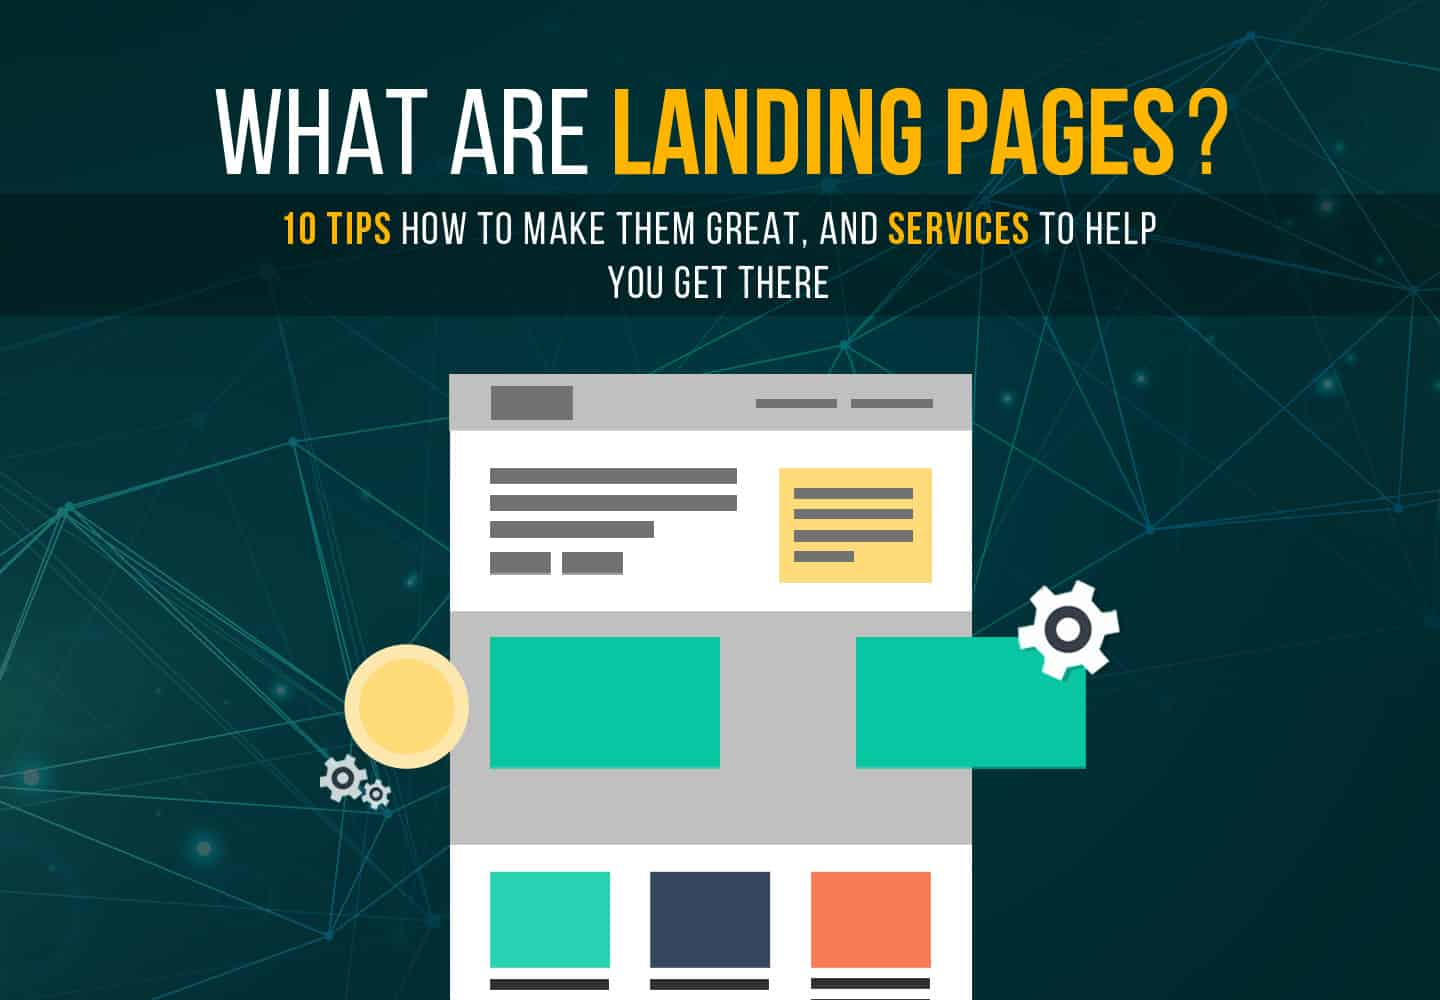 Tips on making great landing pages